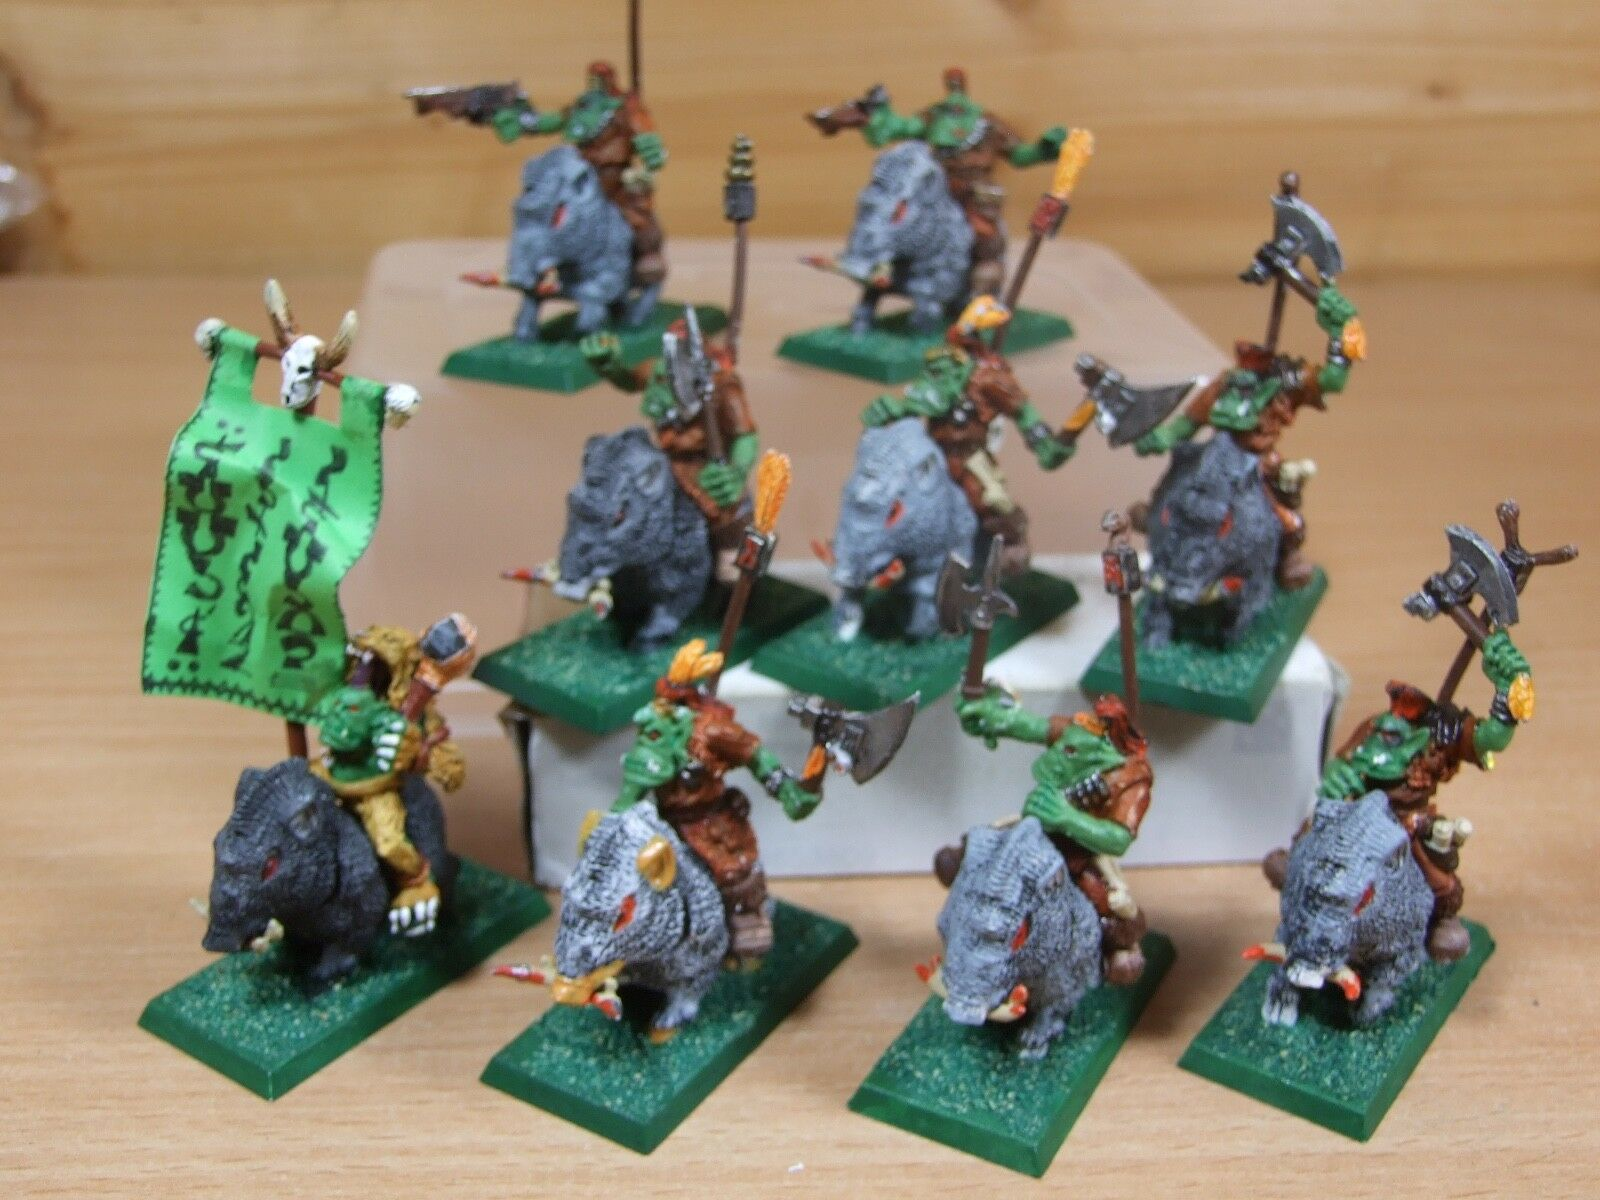 9 CLASSIC METAL WARHAMMER SAVAGE ORC BOAR BOYZ PAINTED (402)